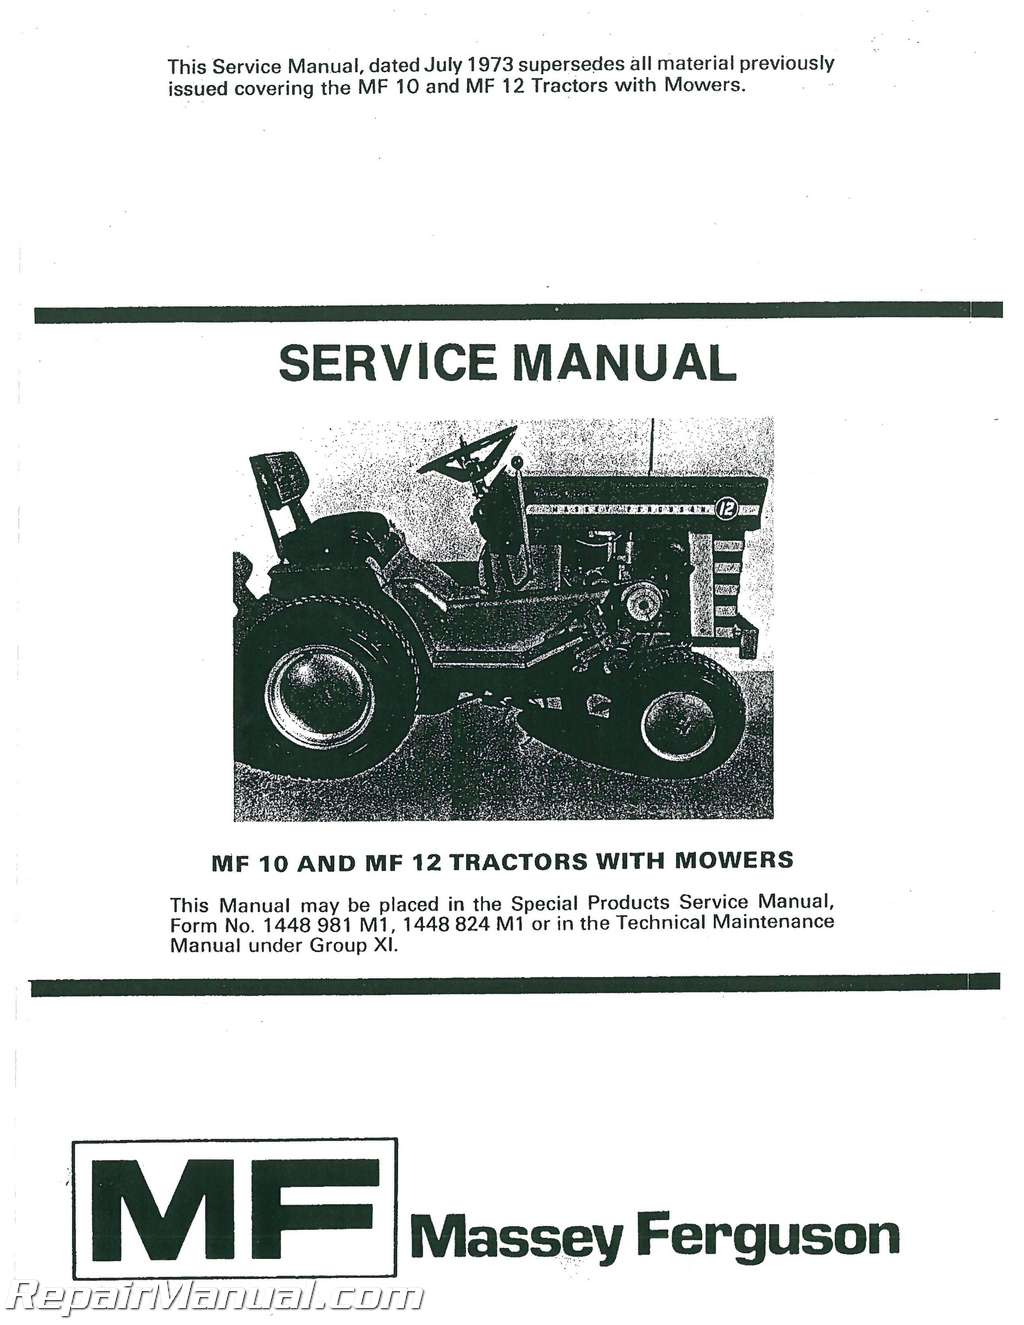 massey ferguson mf 399 1006 6 engine tractor parts manual 819784 pdf